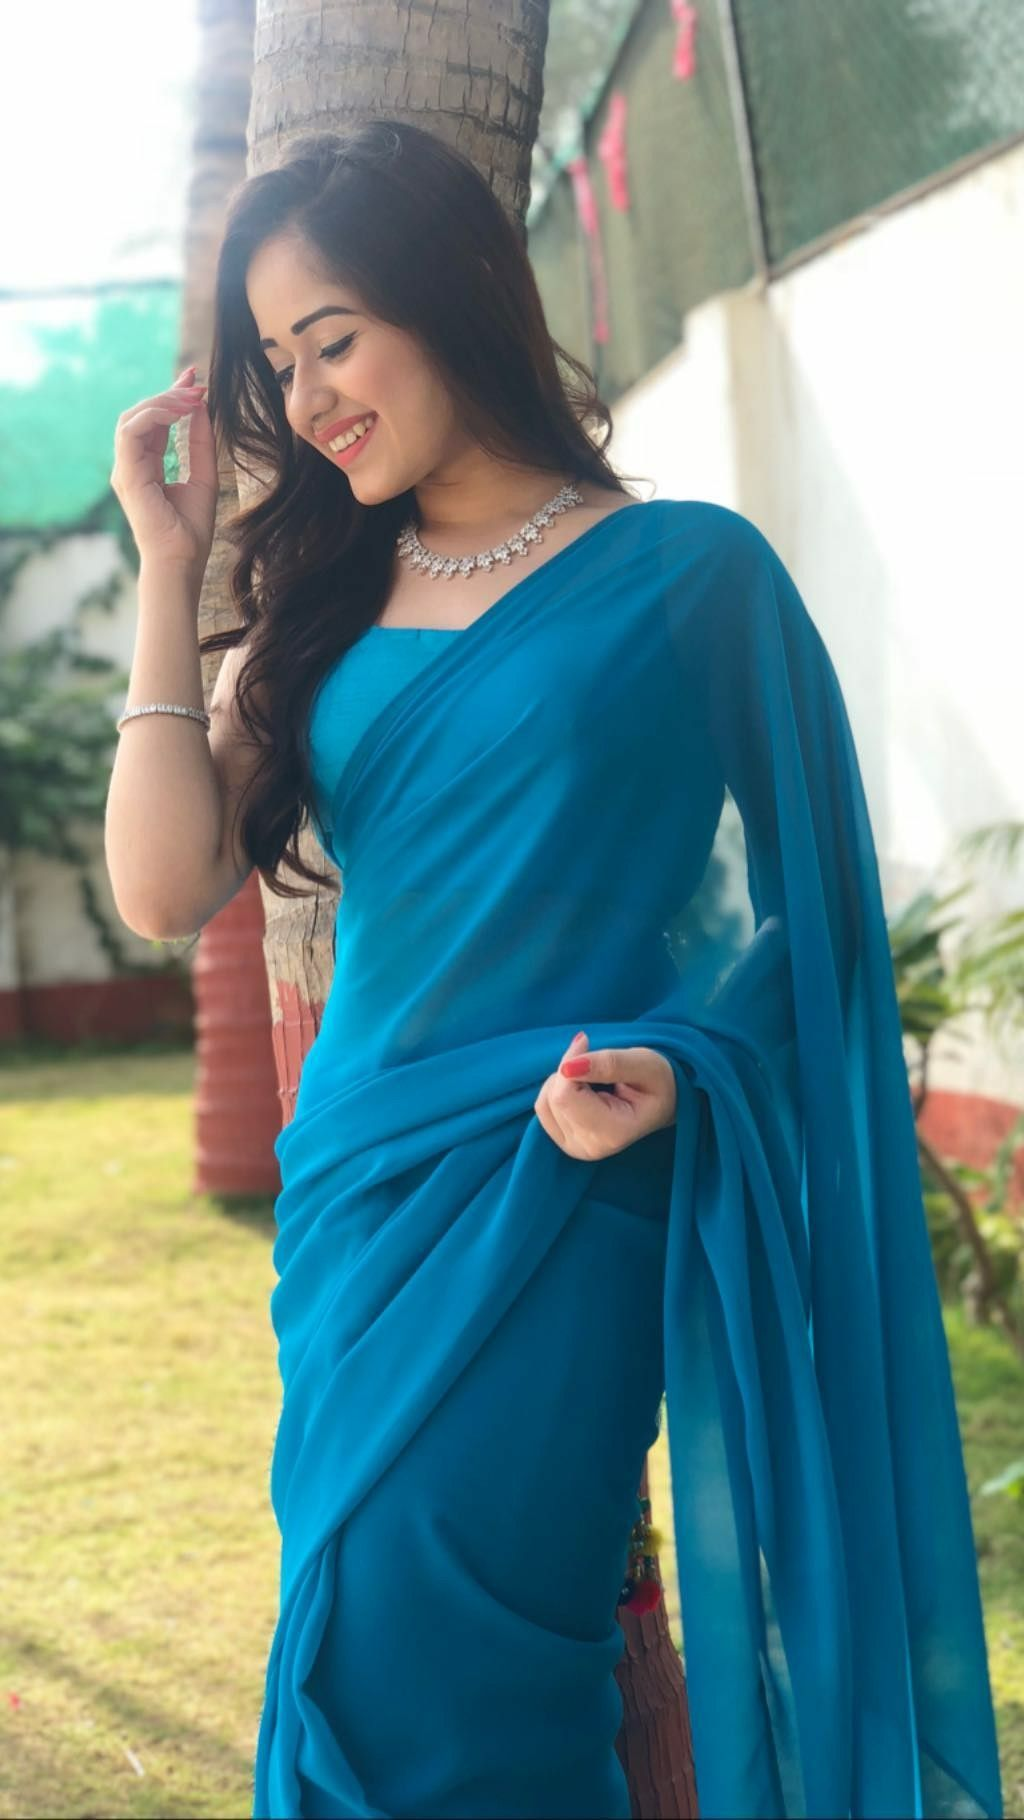 Pin On Actors India Have a look at saree poses and photoshoot in saree at home. pinterest